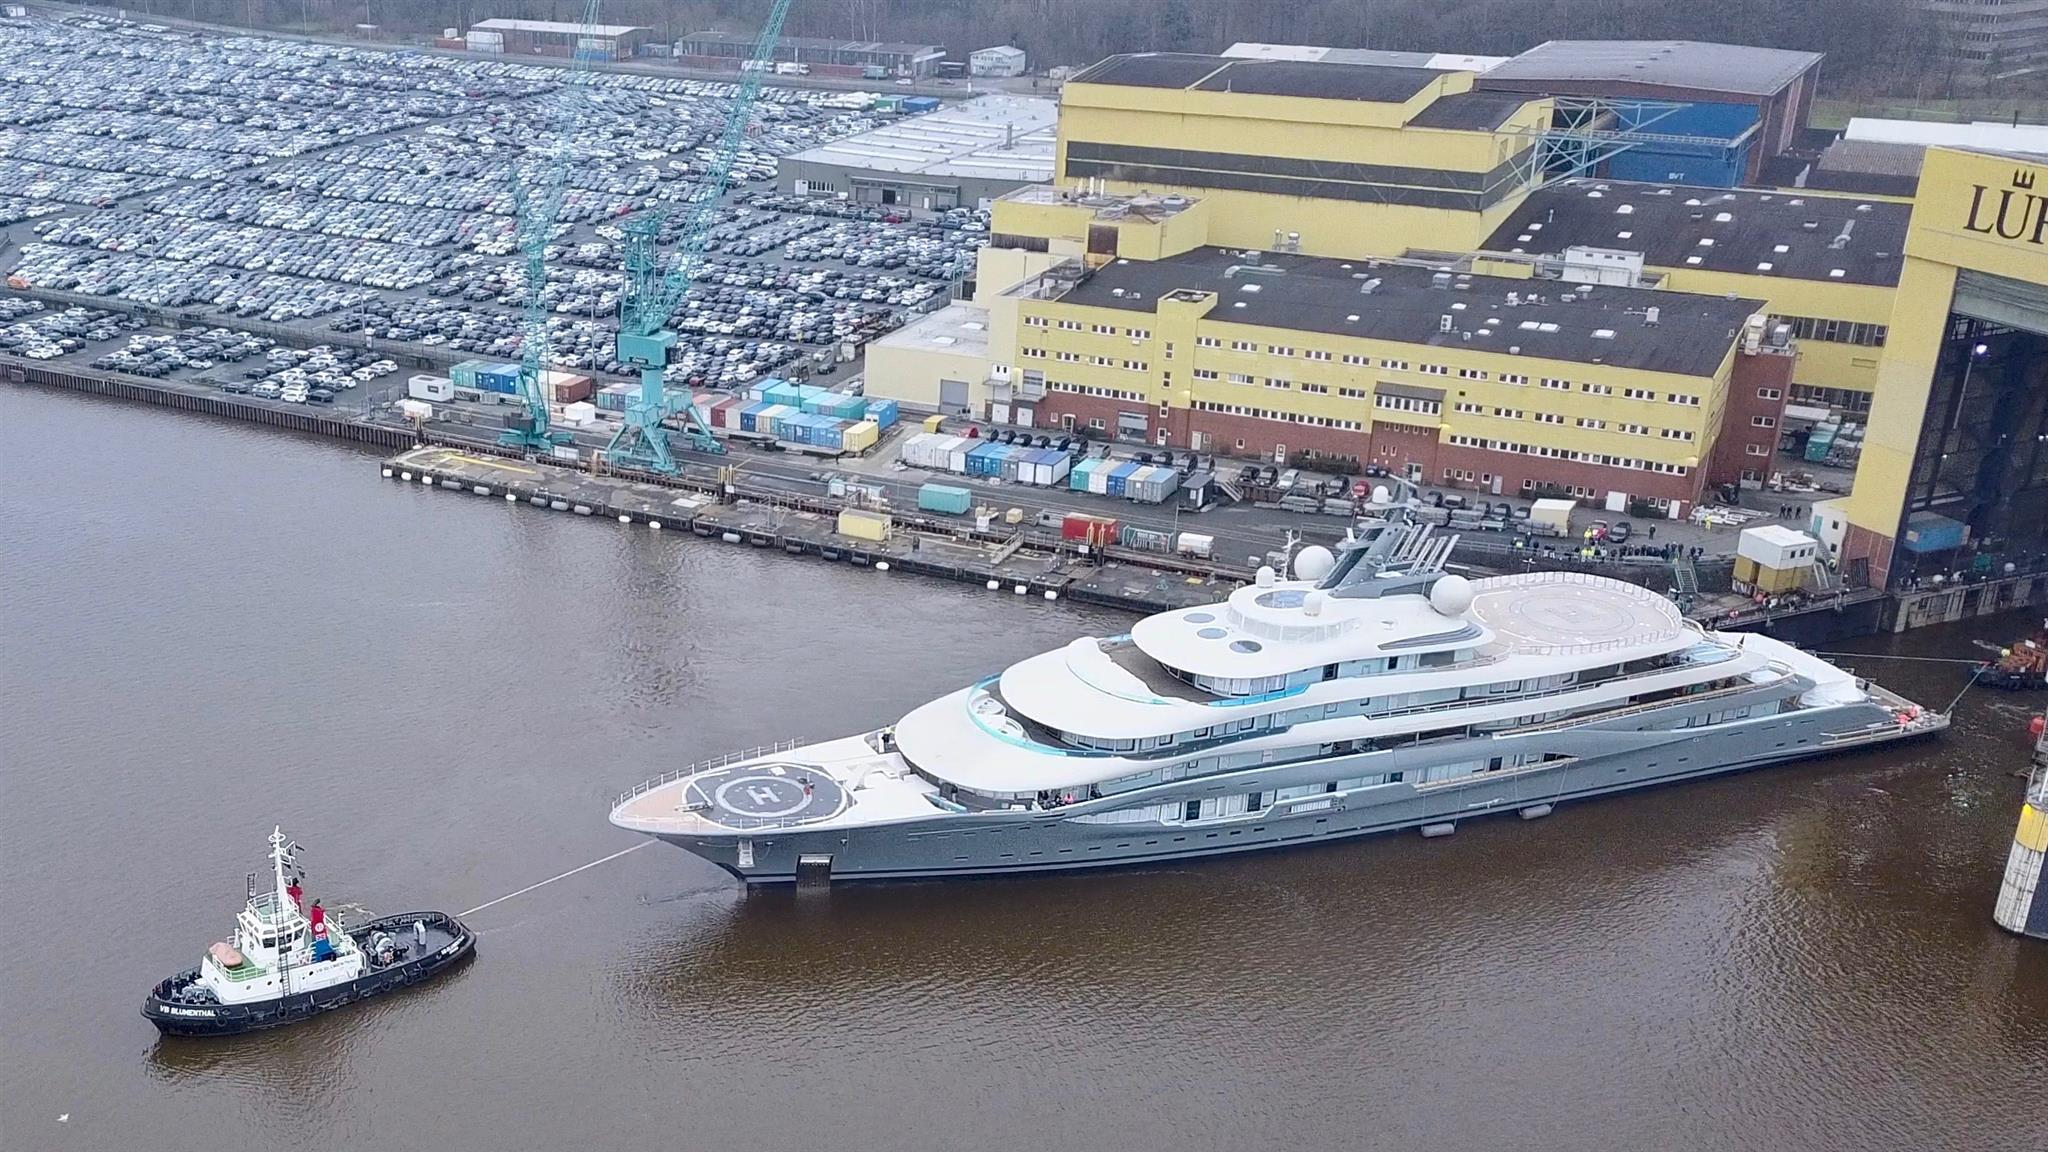 project shu motoryacht lurssen 136m 2018 launch aerial photo drduu